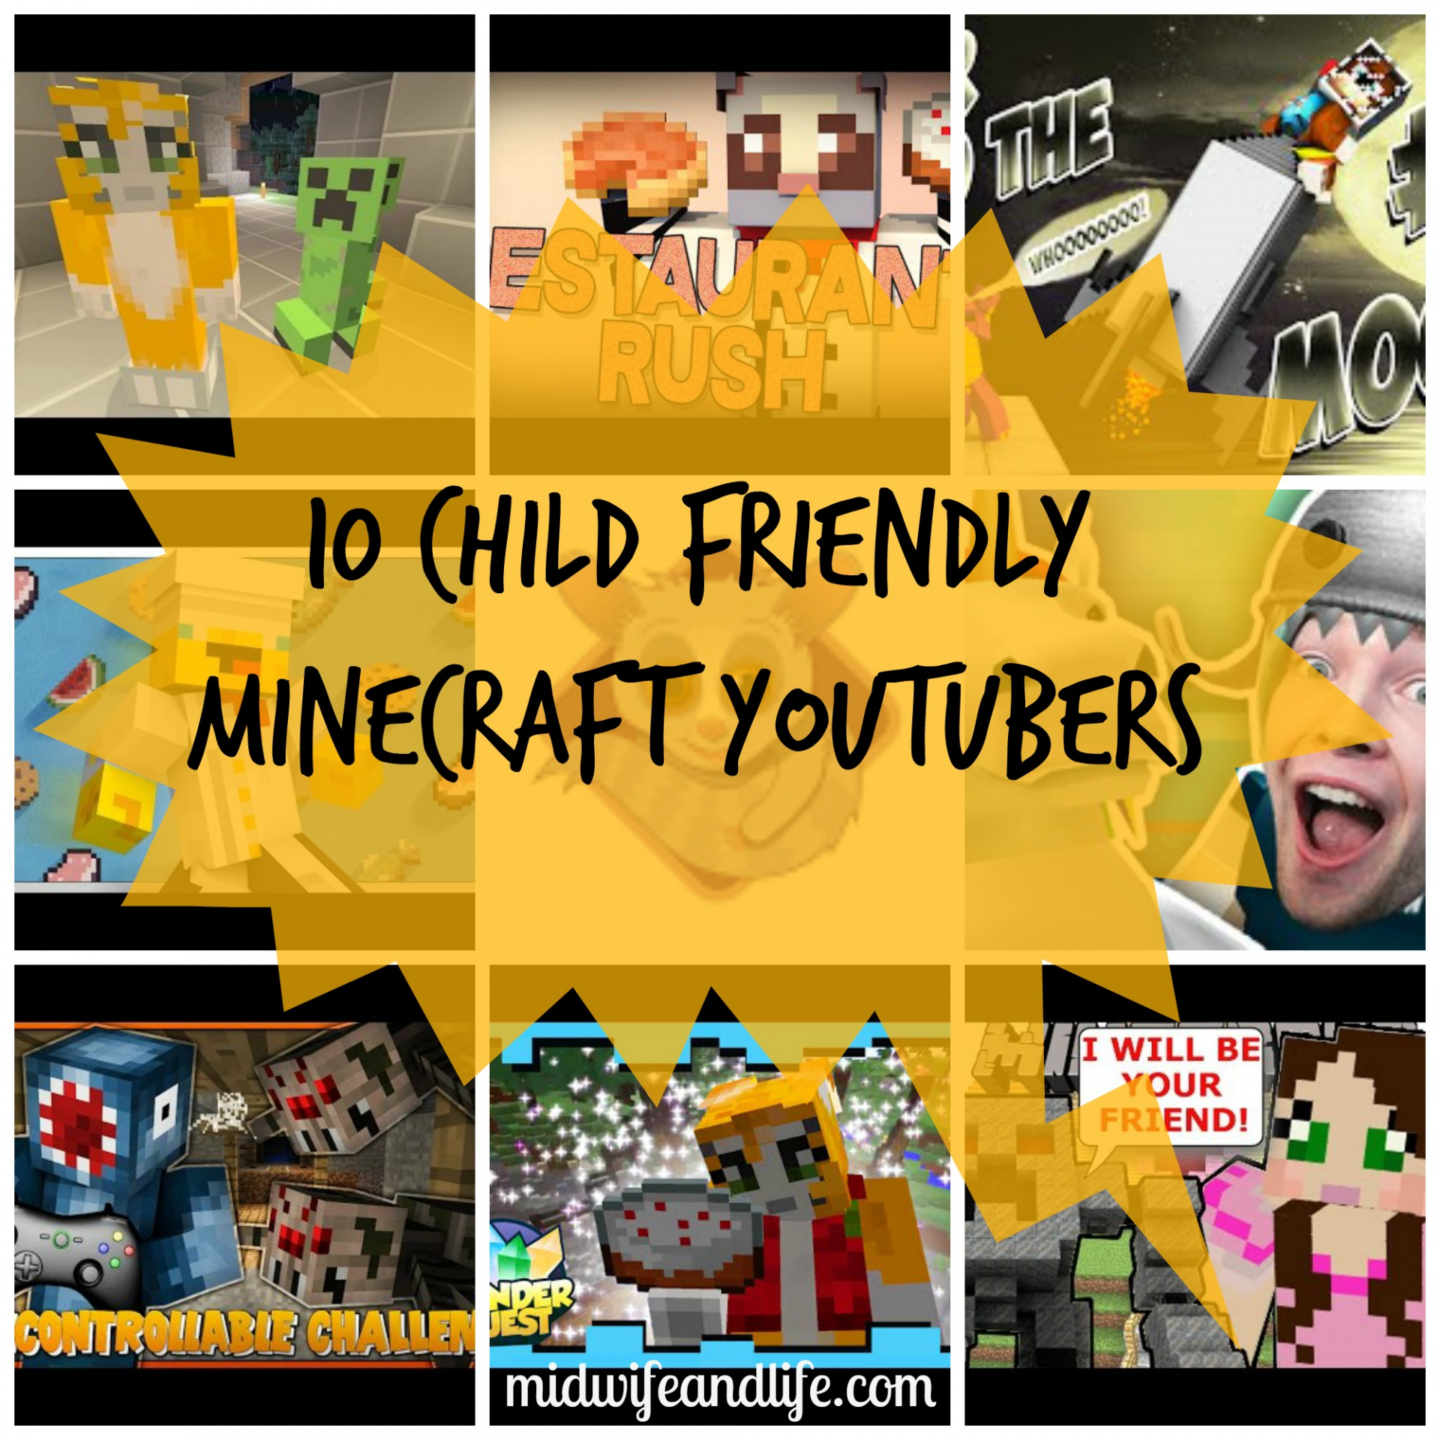 Midwife and Life - 11 Child Friendly Minecraft YouTubers you can